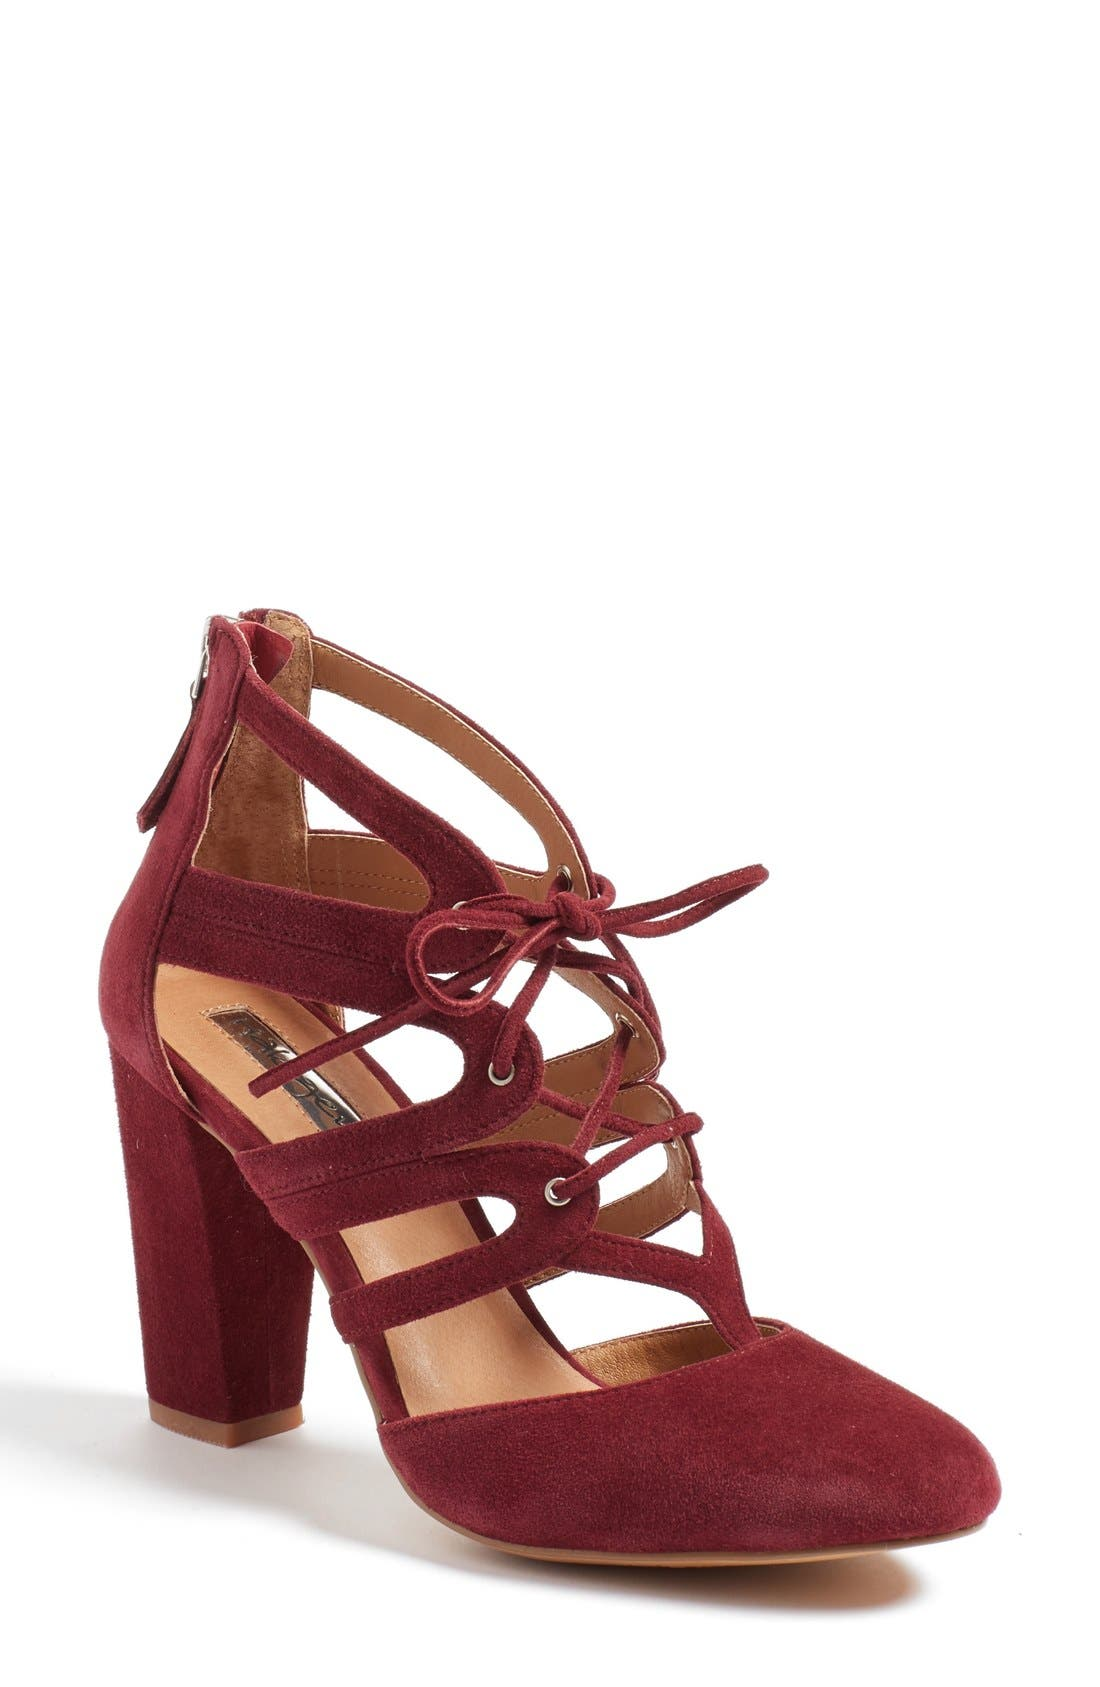 'Sydney' Block Heel Ghillie Pump,                             Main thumbnail 1, color,                             Burgundy Suede